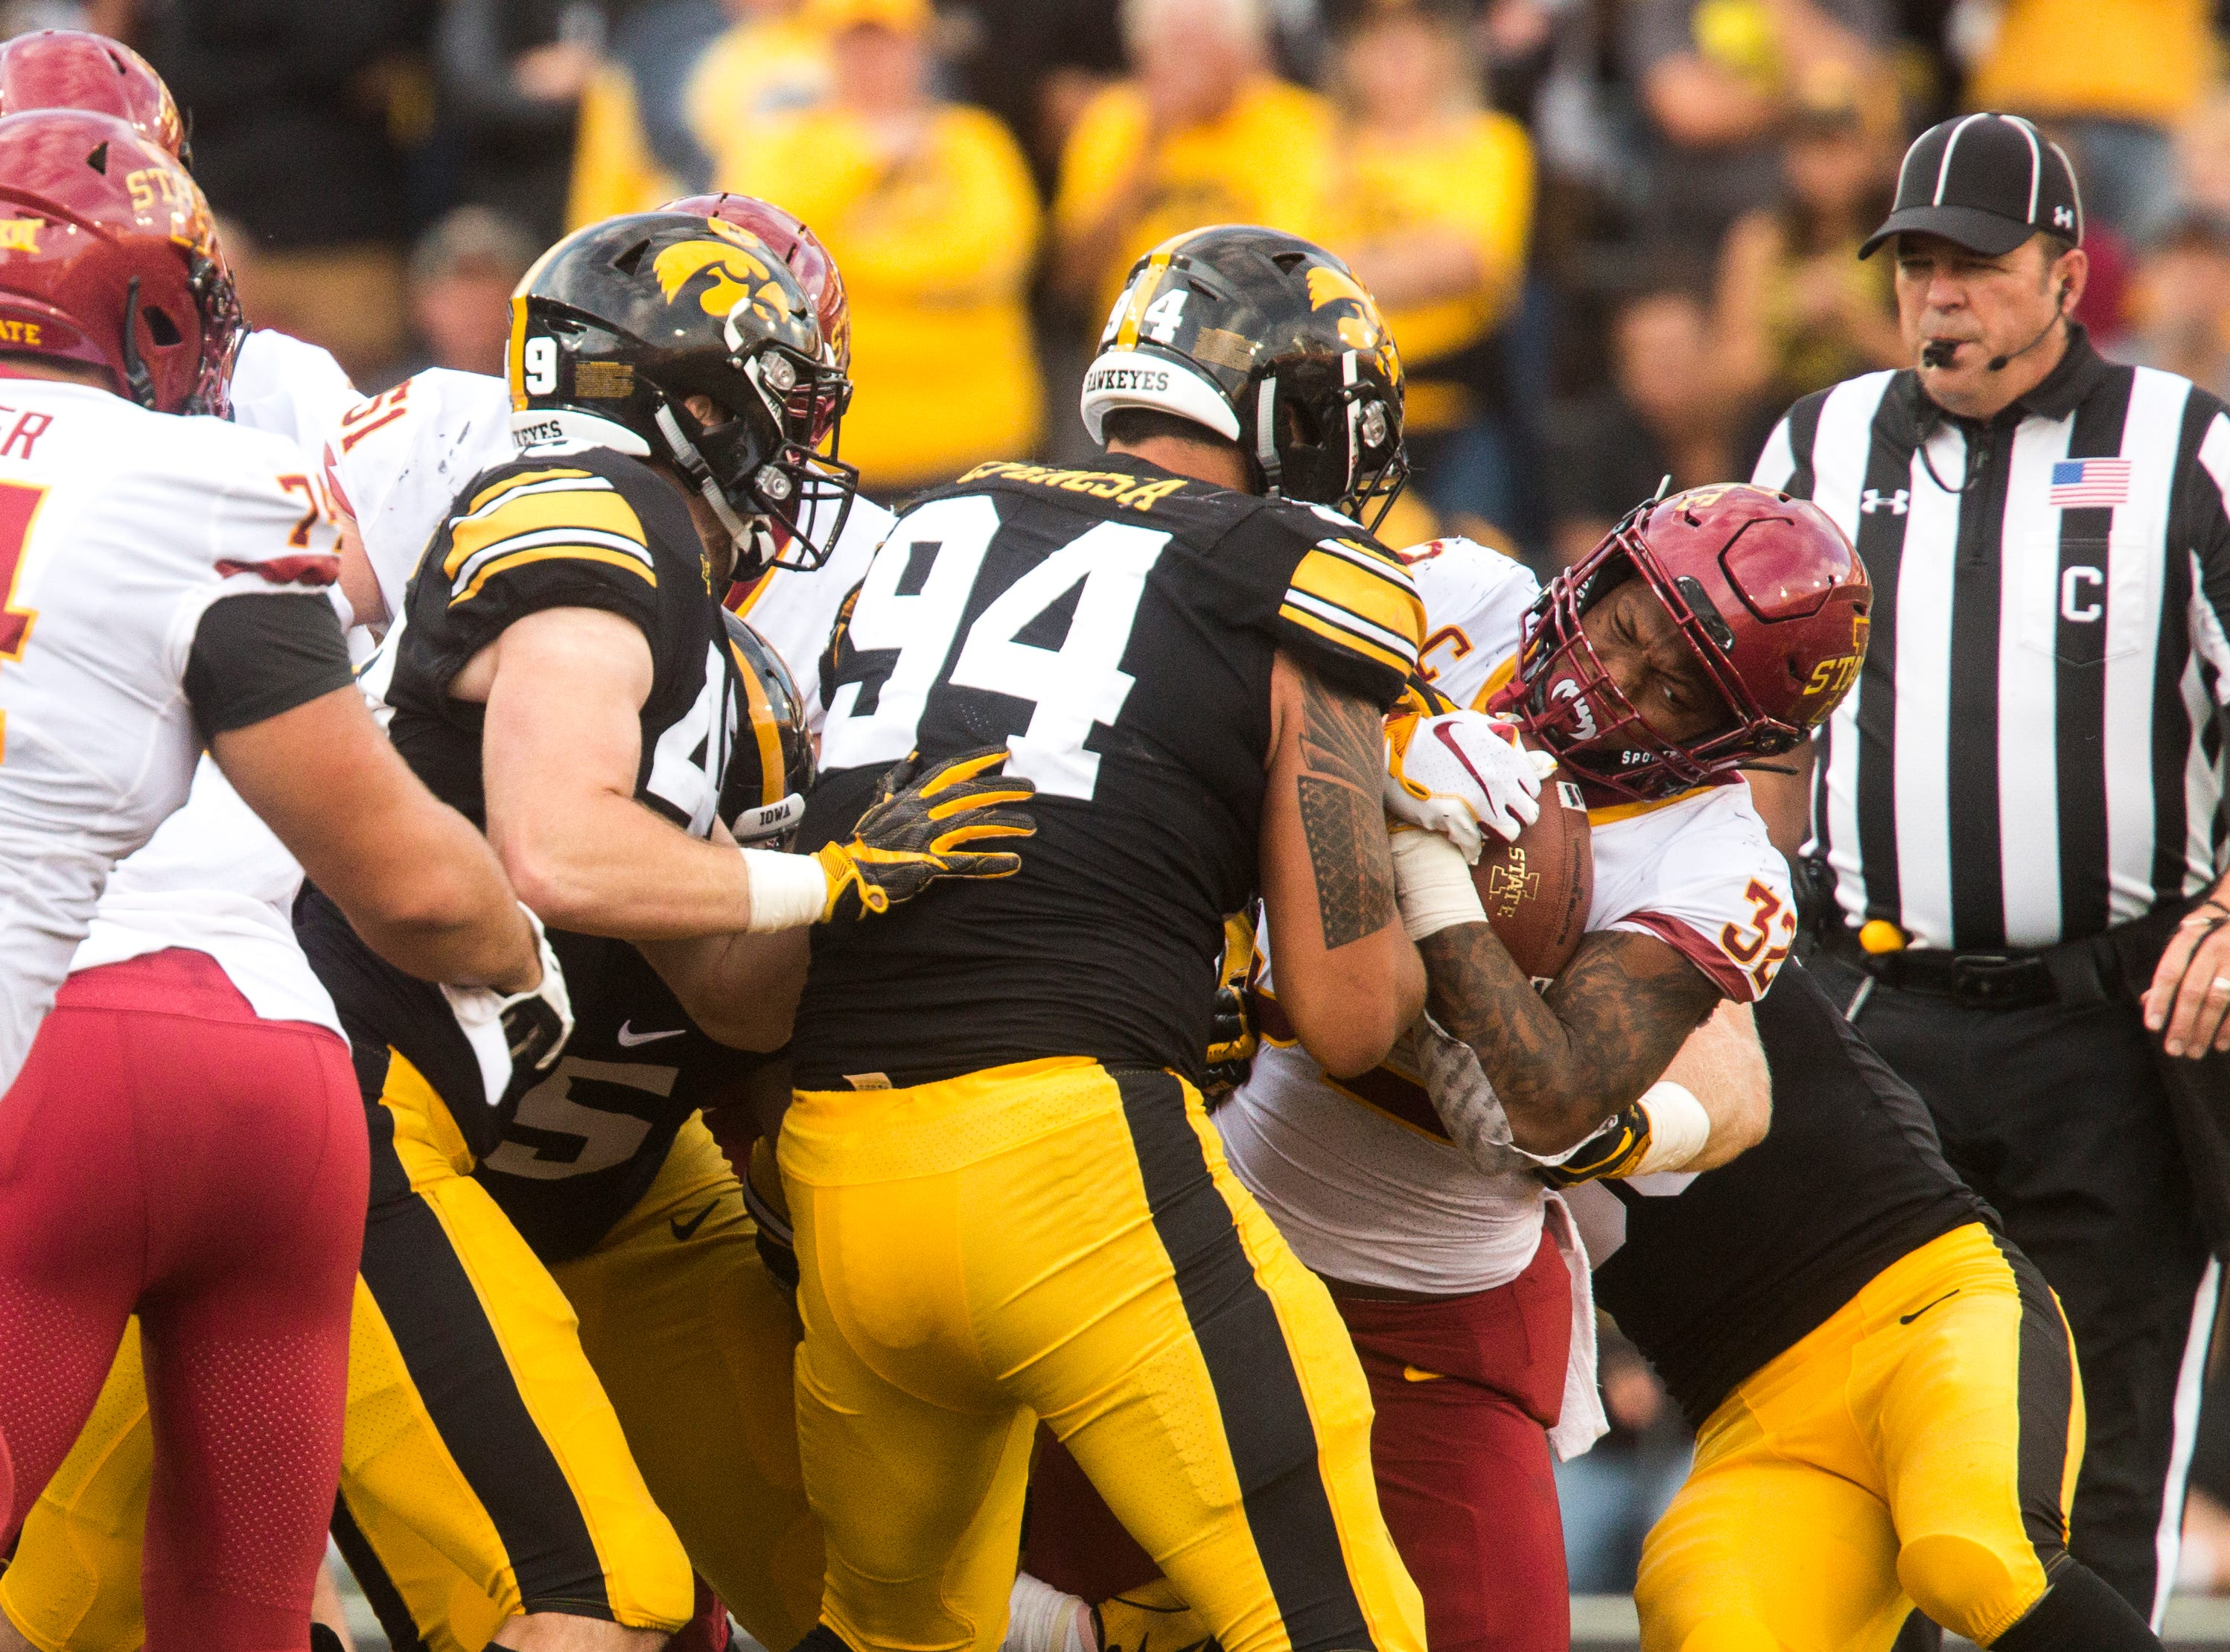 Iowa State running back David Montgomery (32) gets stopped by Iowa defensive end A.J. Epenesa (94) during the Cy-Hawk NCAA football game on Saturday, Sept. 8, 2018, at Kinnick Stadium in Iowa City.